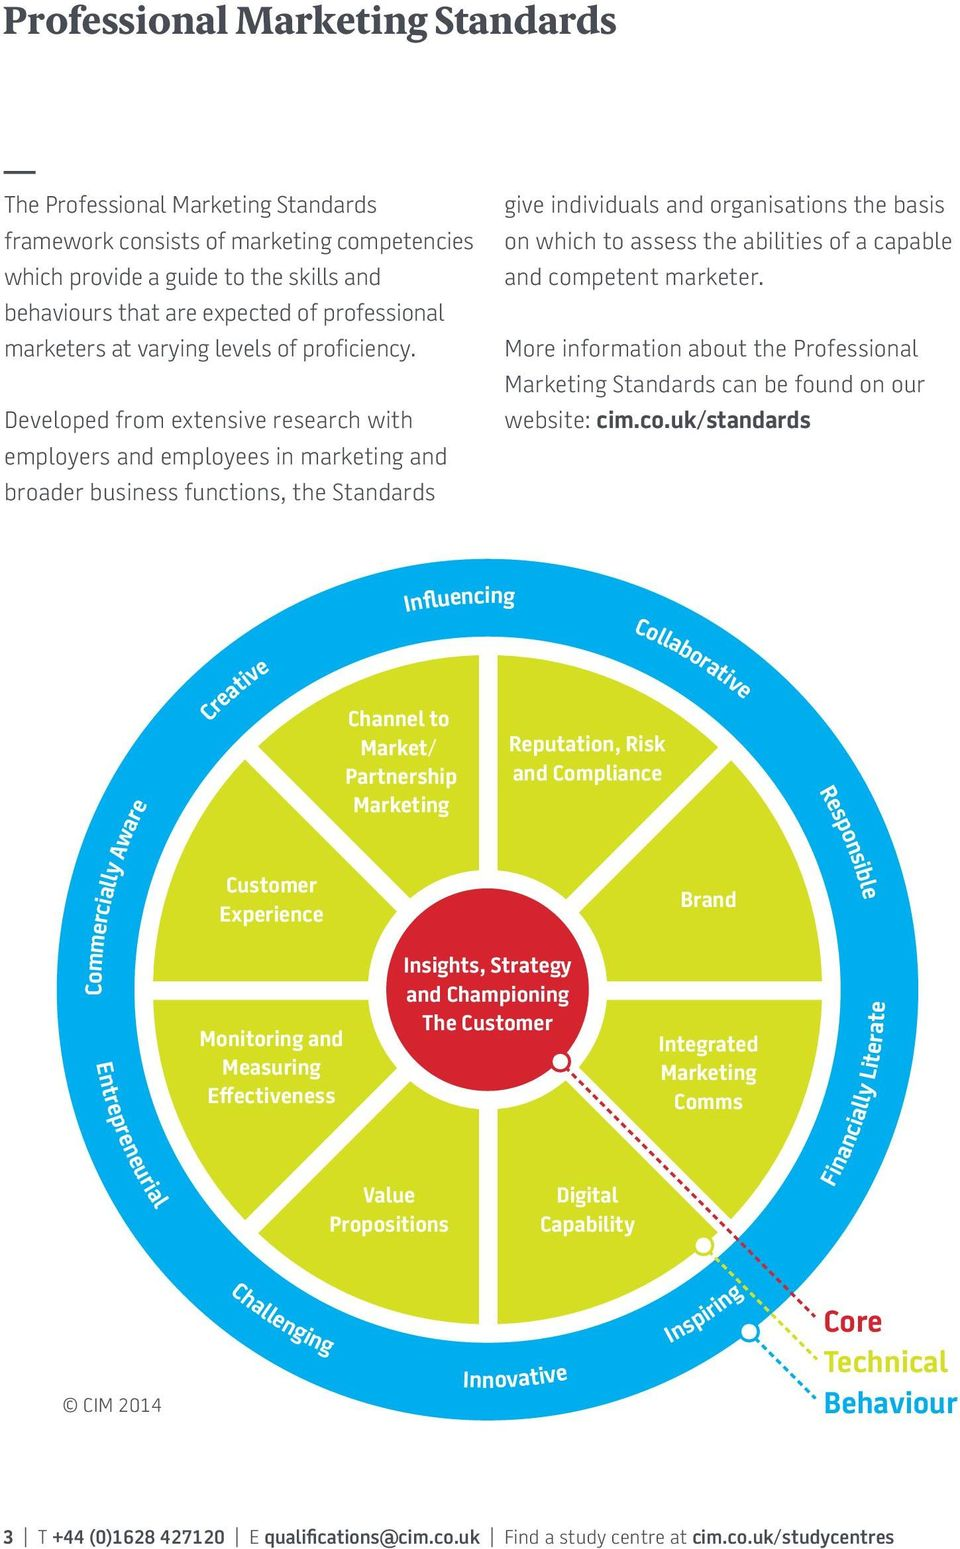 Developed from extensive research with employers and employees in marketing and broader business functions, the Standards give individuals and organisations the basis on which to assess the abilities